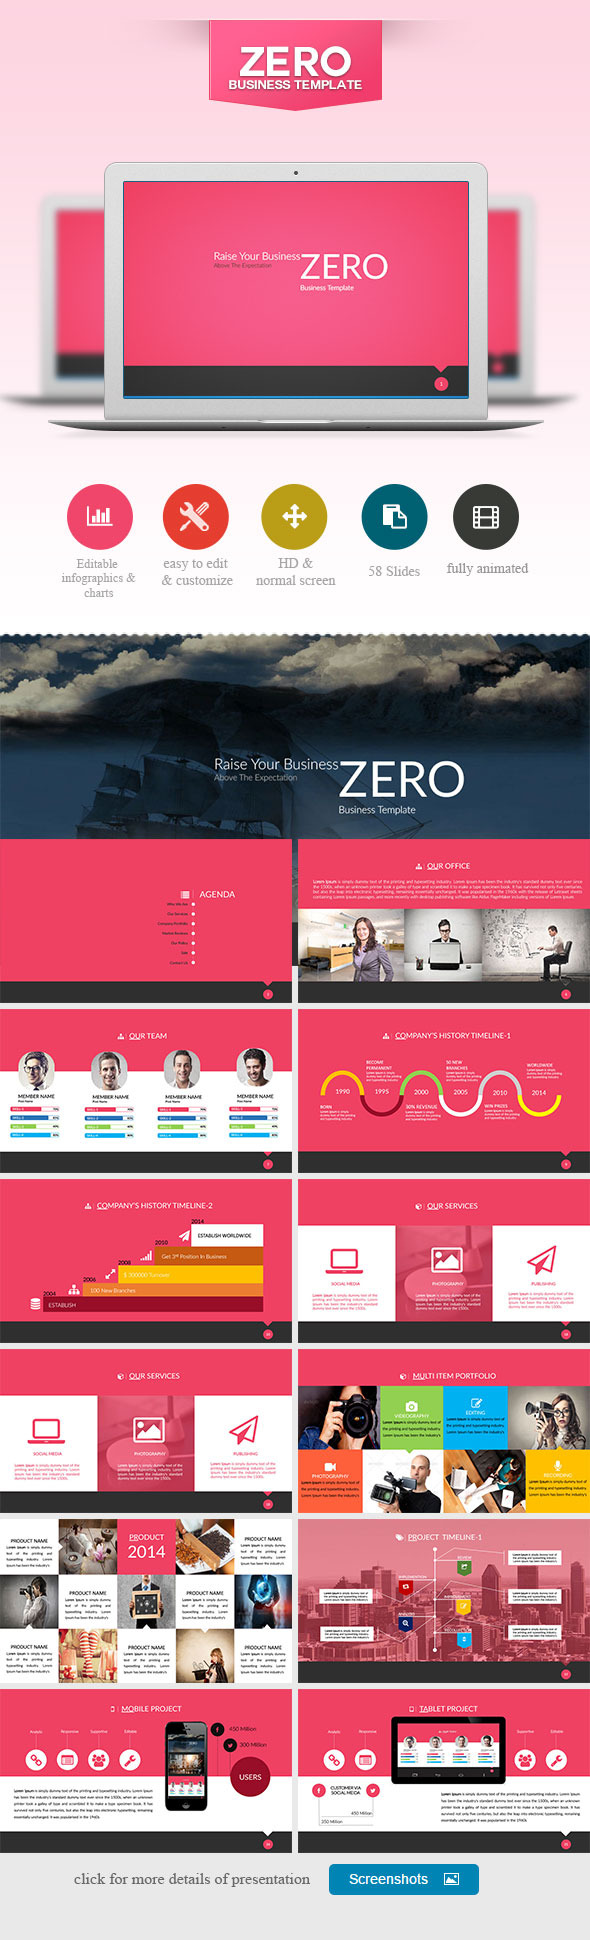 ZERO Power Point Presentation - PowerPoint Templates Presentation Templates